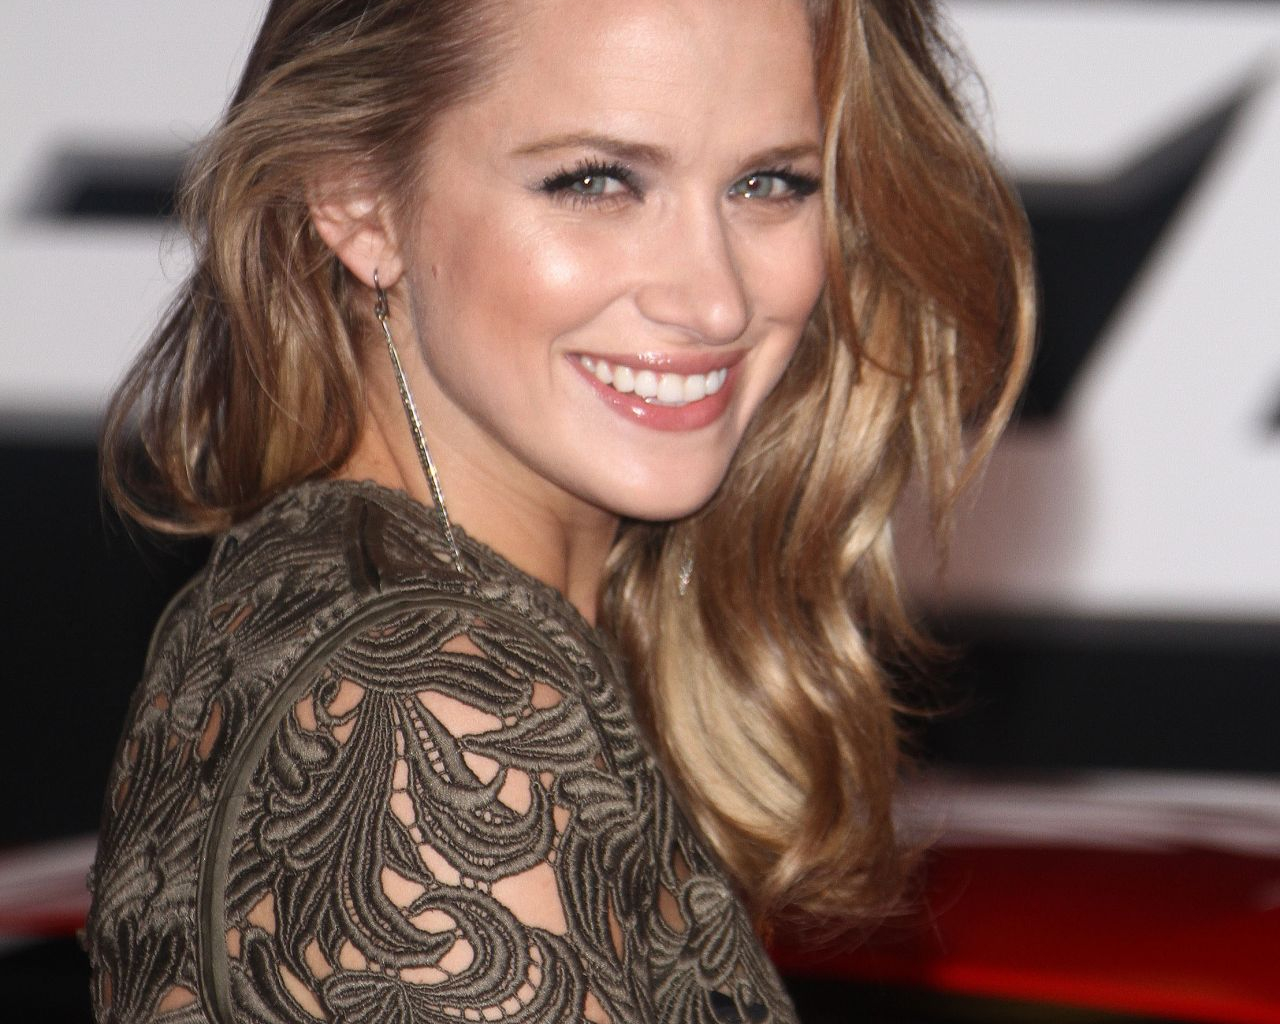 Free Download Shantel Vansanten Wallpaper Hd Wallpapers